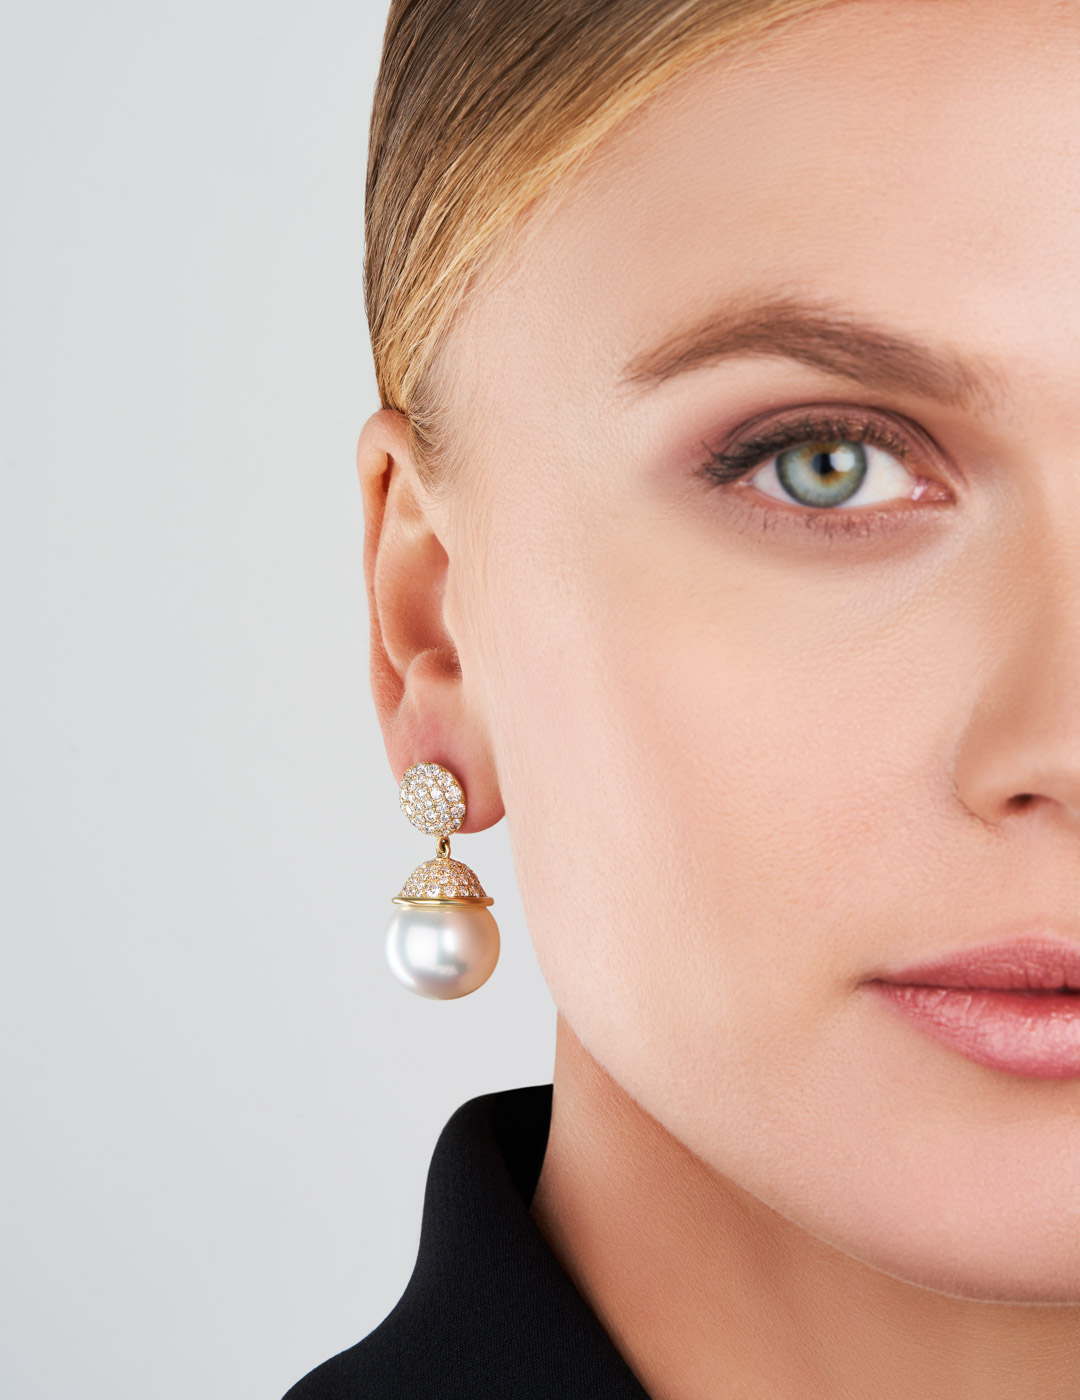 mish_products_earrings_Hanalei-Pave-Dome-ER-2